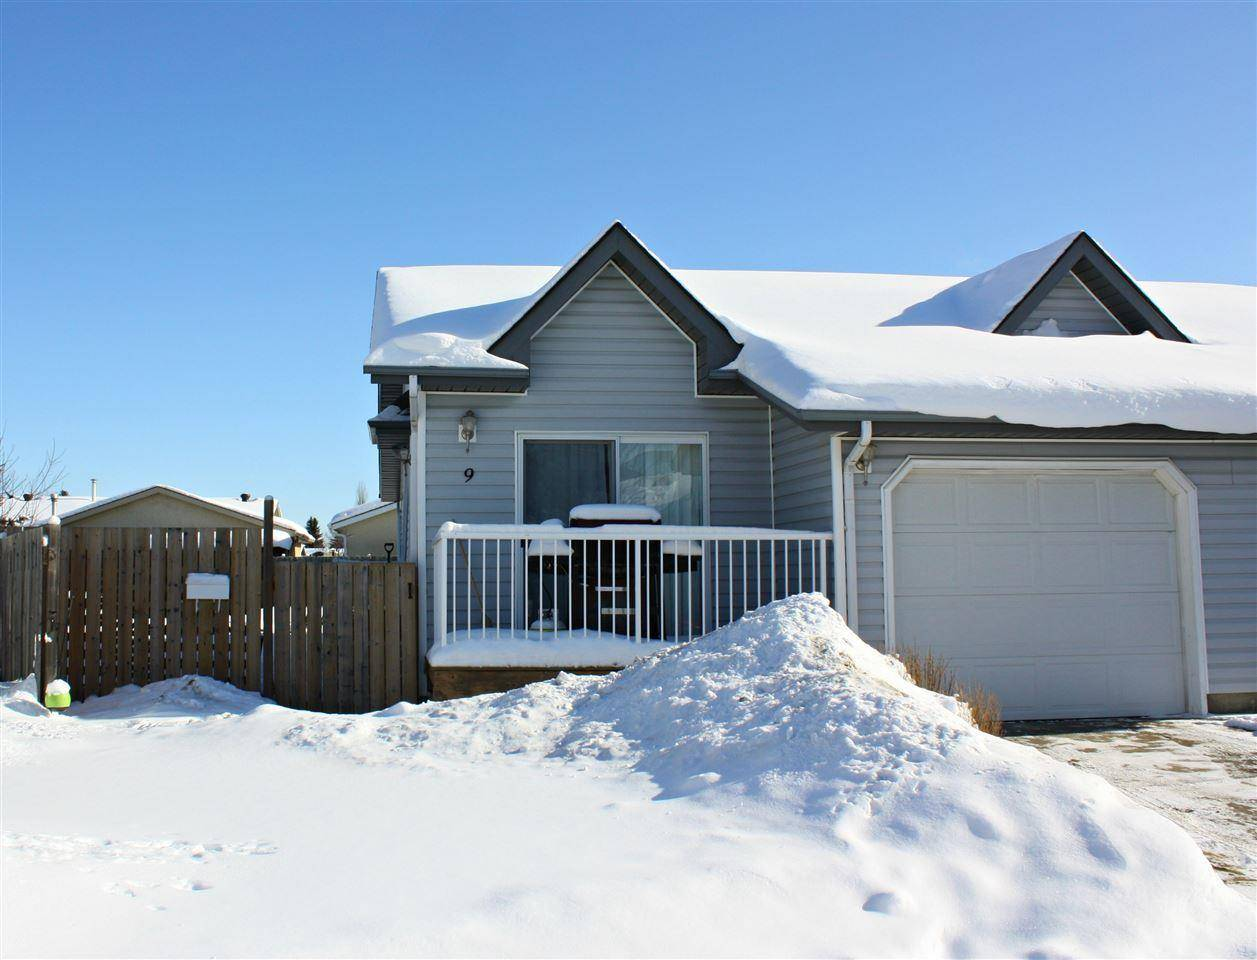 Townhouse for sale at 12603 152 Ave Nw Unit 9 Edmonton Alberta - MLS: E4188023